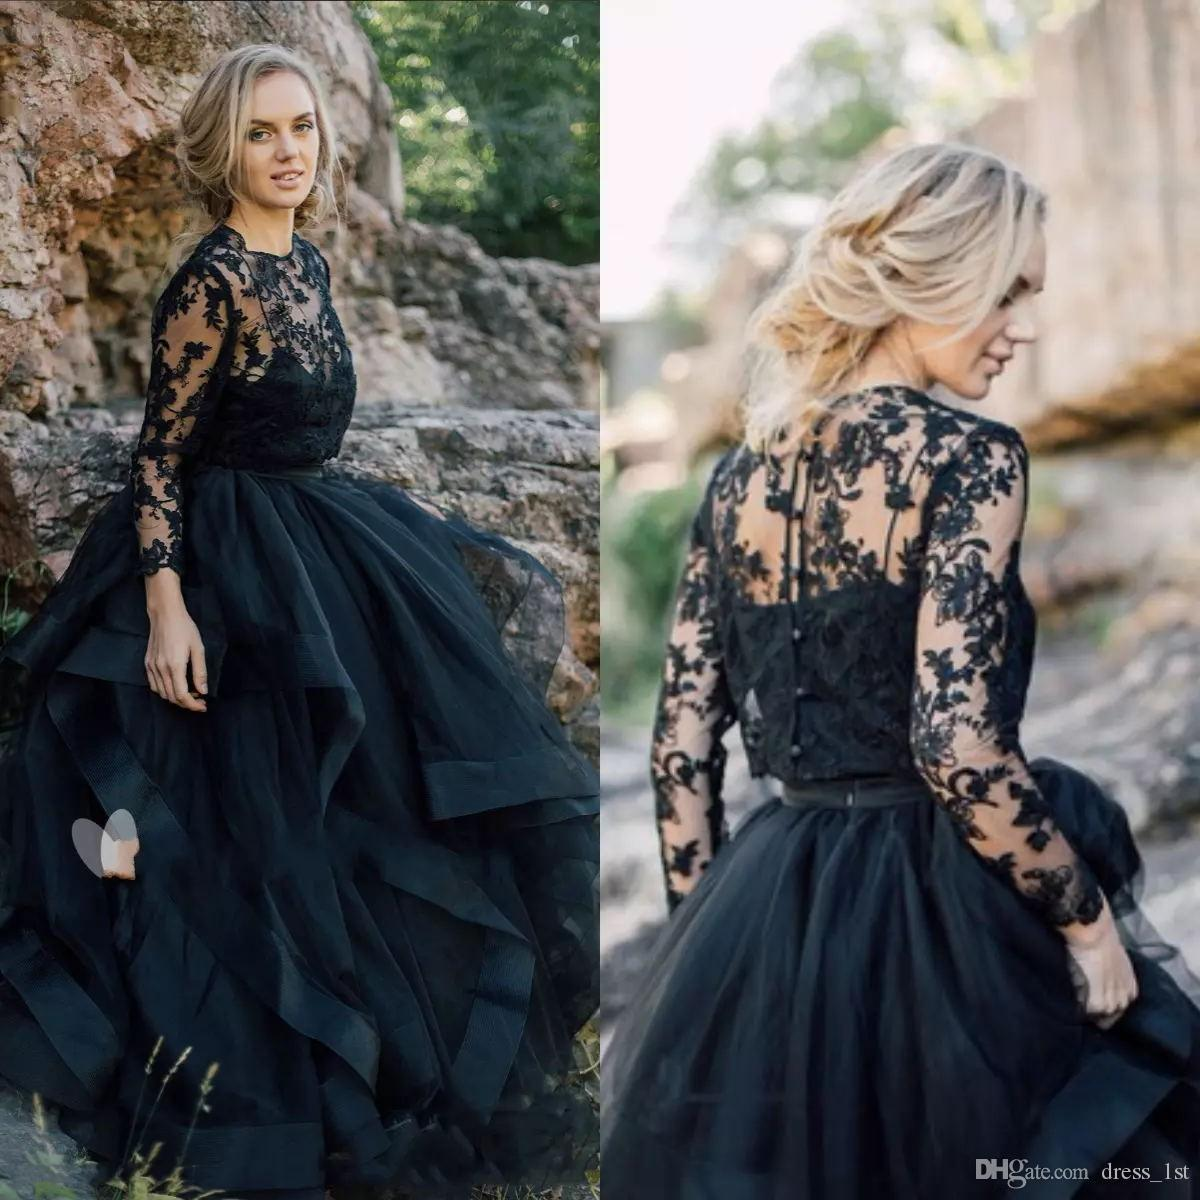 2019 Country Black Wedding Dresses with Long Sleeve Bolero Jacket Spaghetti Straps Tiered Puffry Skirt Lace and Tulle Gothic Bridal Gowns